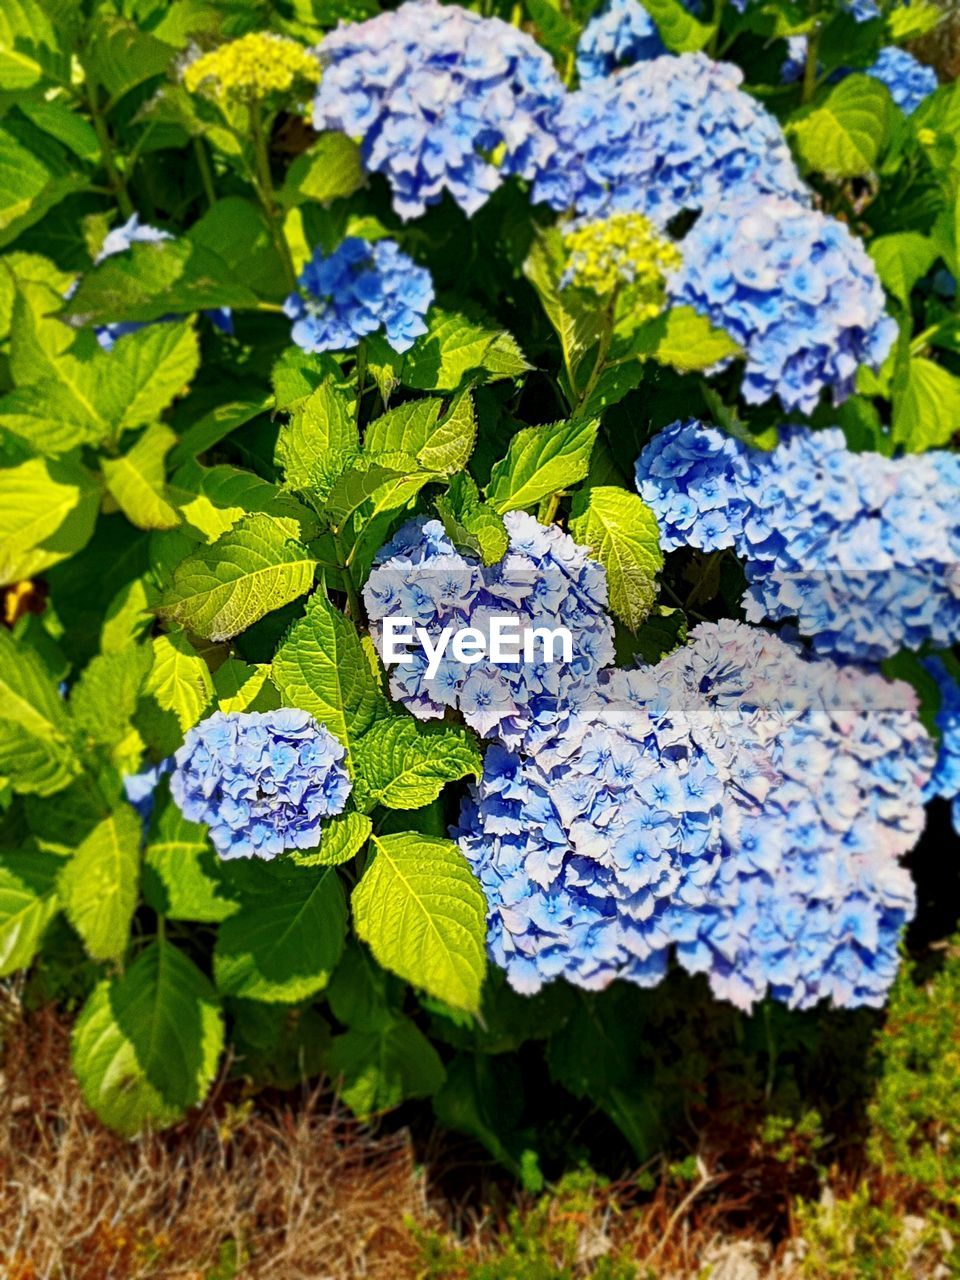 flowering plant, flower, plant part, growth, blue, plant, nature, leaf, day, beauty in nature, vulnerability, fragility, freshness, no people, high angle view, close-up, green color, hydrangea, purple, outdoors, flower head, bunch of flowers